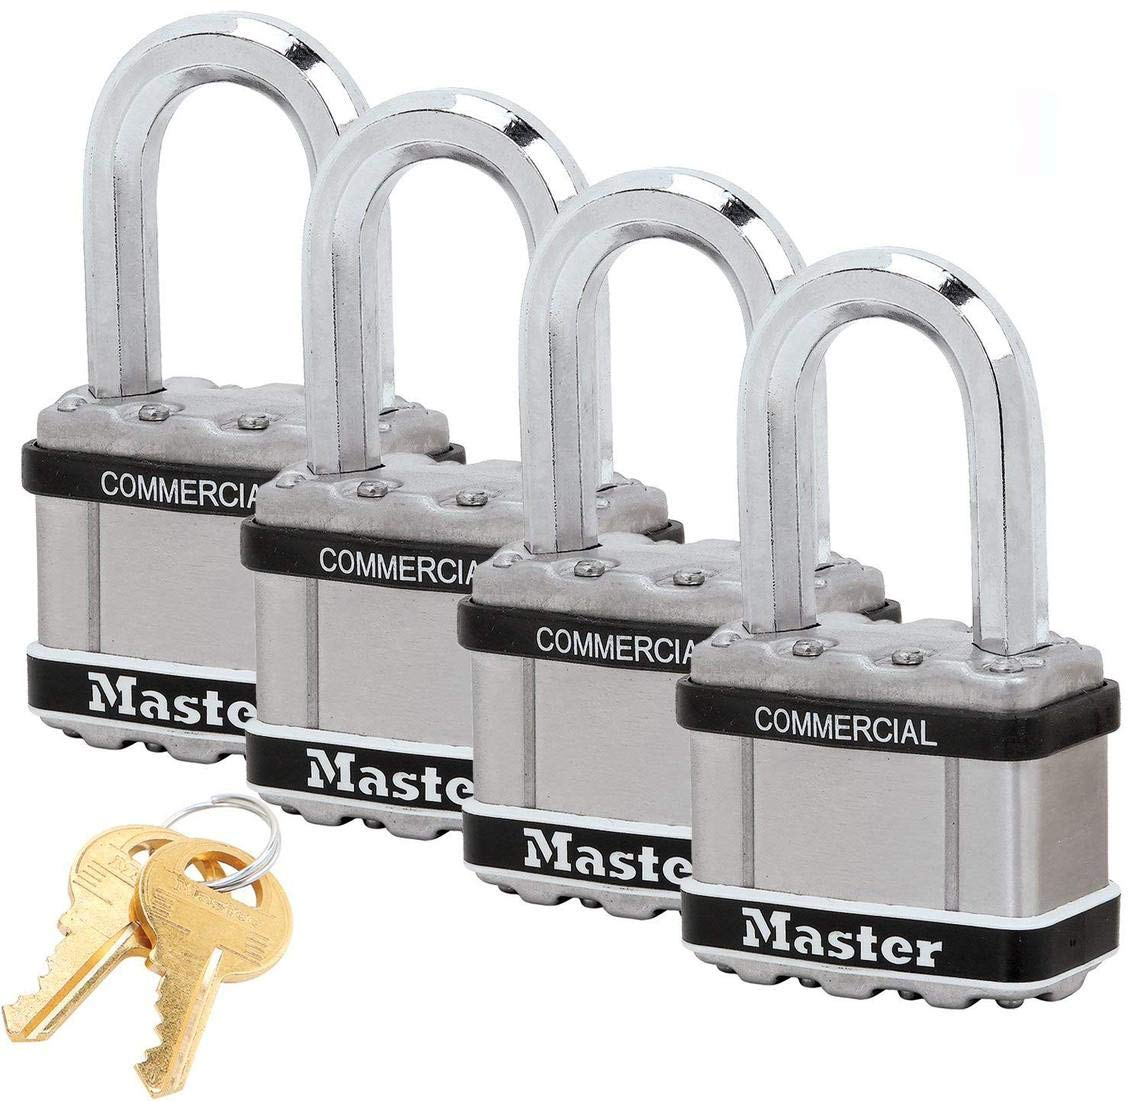 Master Lock Magnum Padlocks - 2'' W x 1-1/2''L Shackle, Four (4) Keyed Alike Locks #M5NKALFSTS-4 w/BumpStop Technology